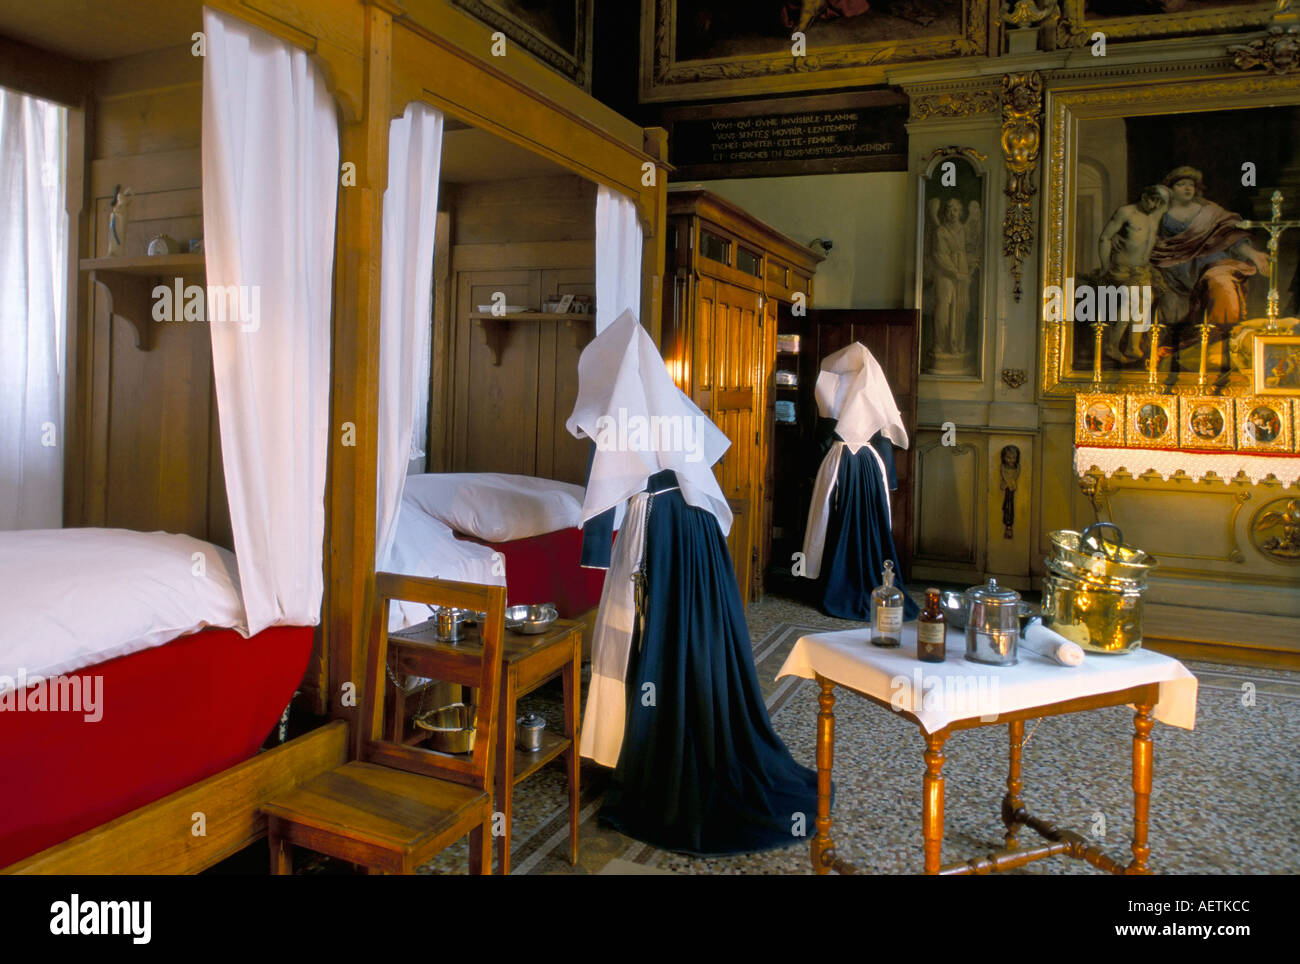 Tableau shows work of the nursing Sisters Hotel Dieu Beaune Burgundy France Europe - Stock Image